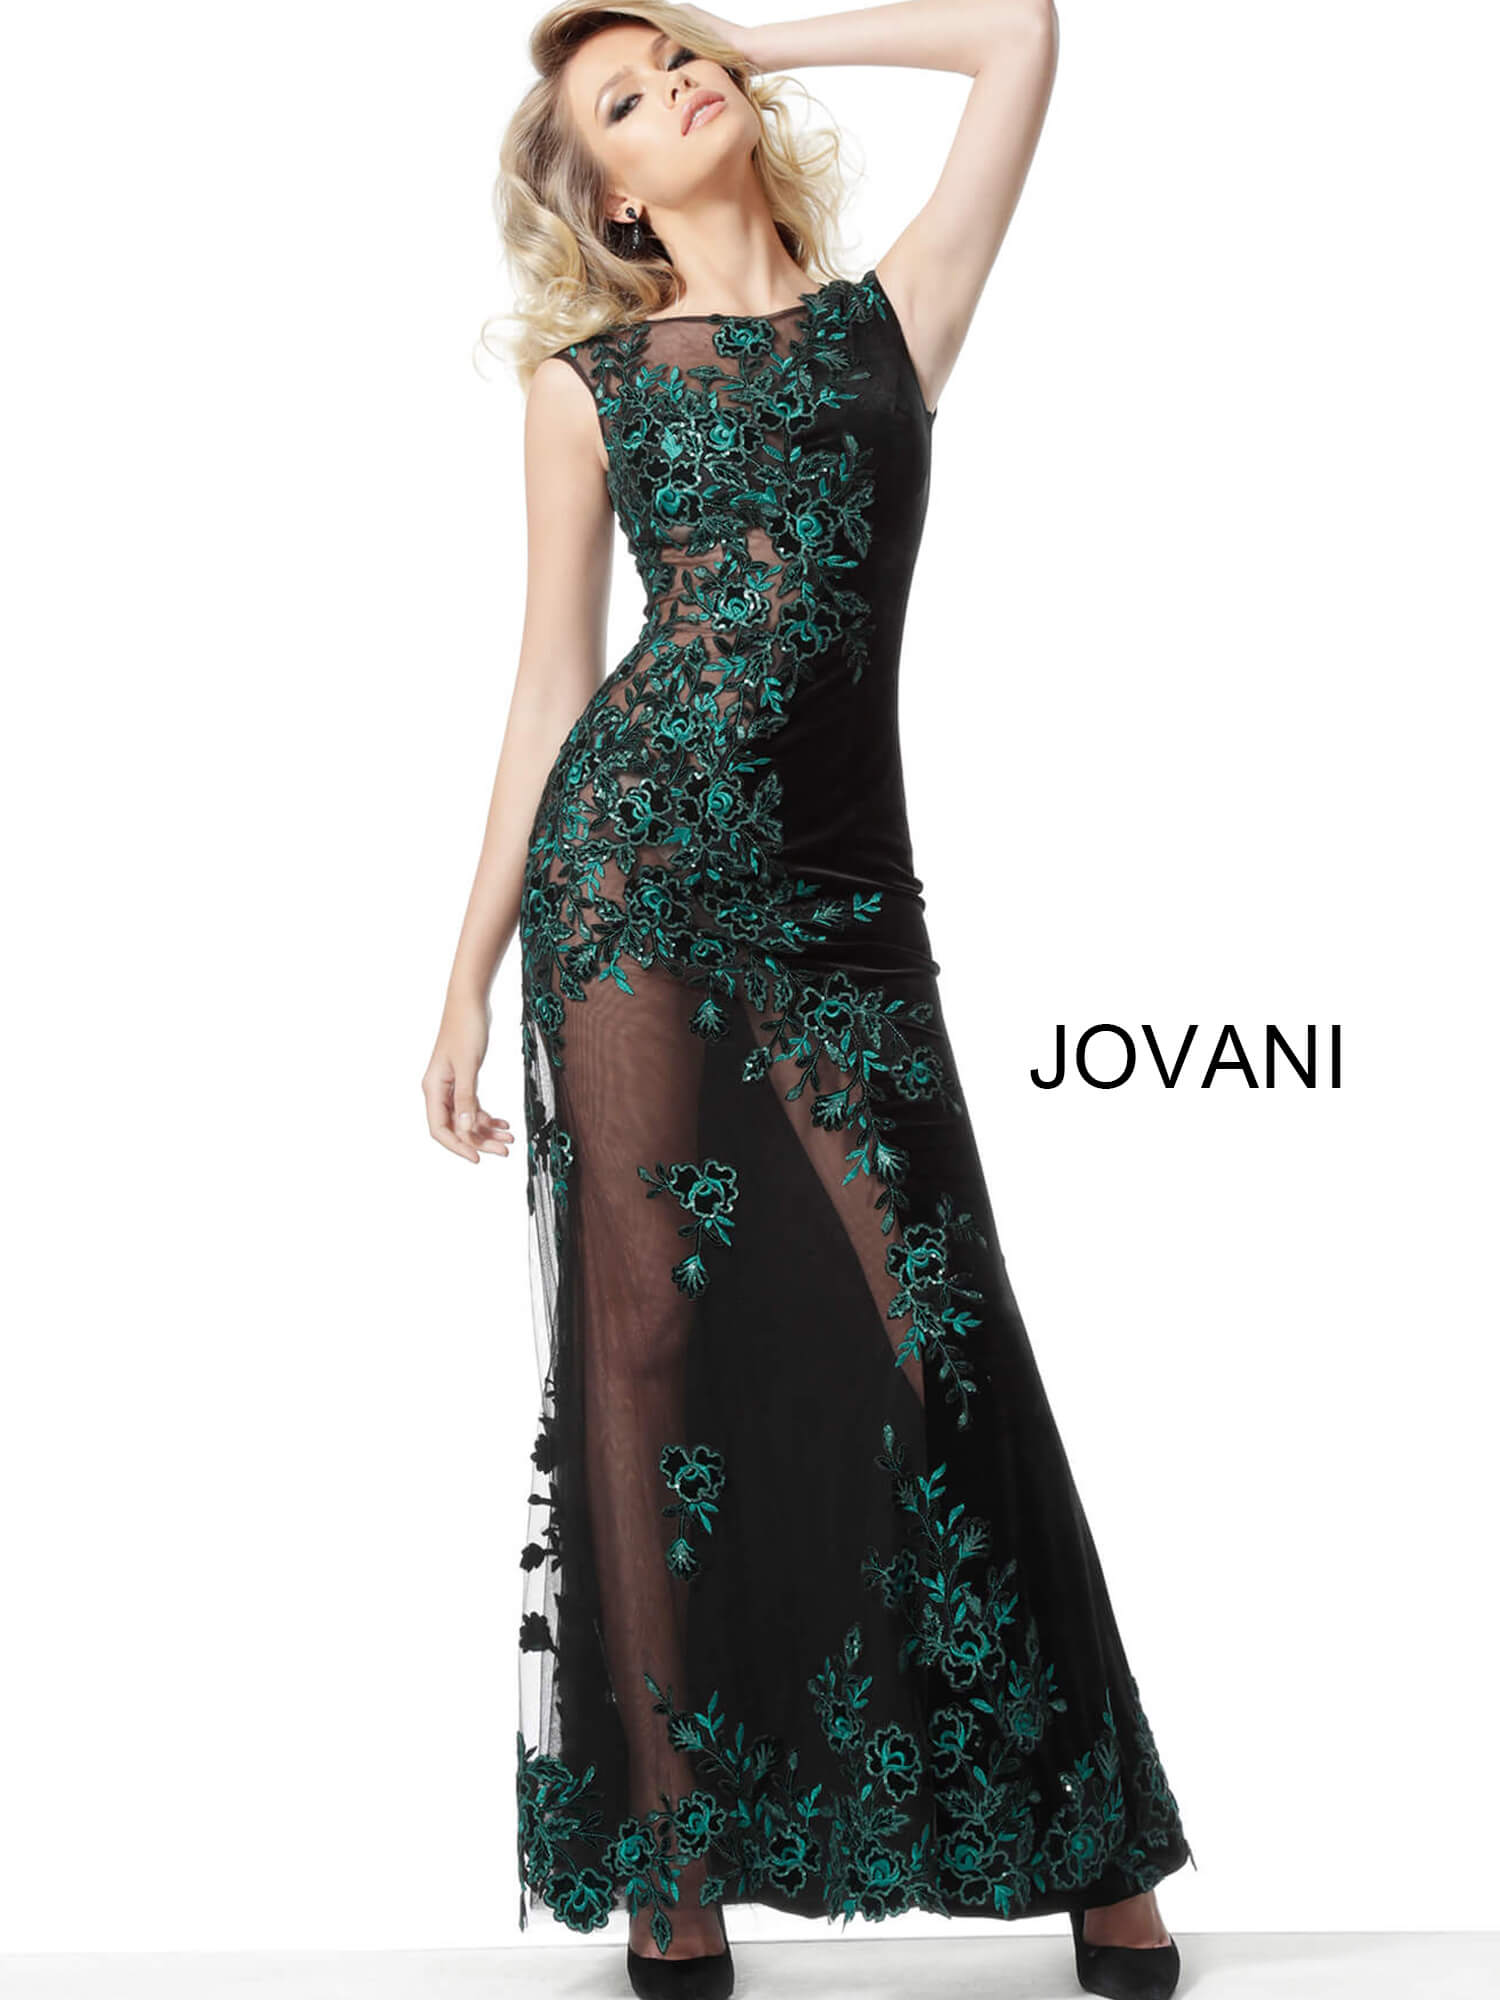 jovani Jovani 63645 Black Teal Embroidered Couture Dress on mobile 2